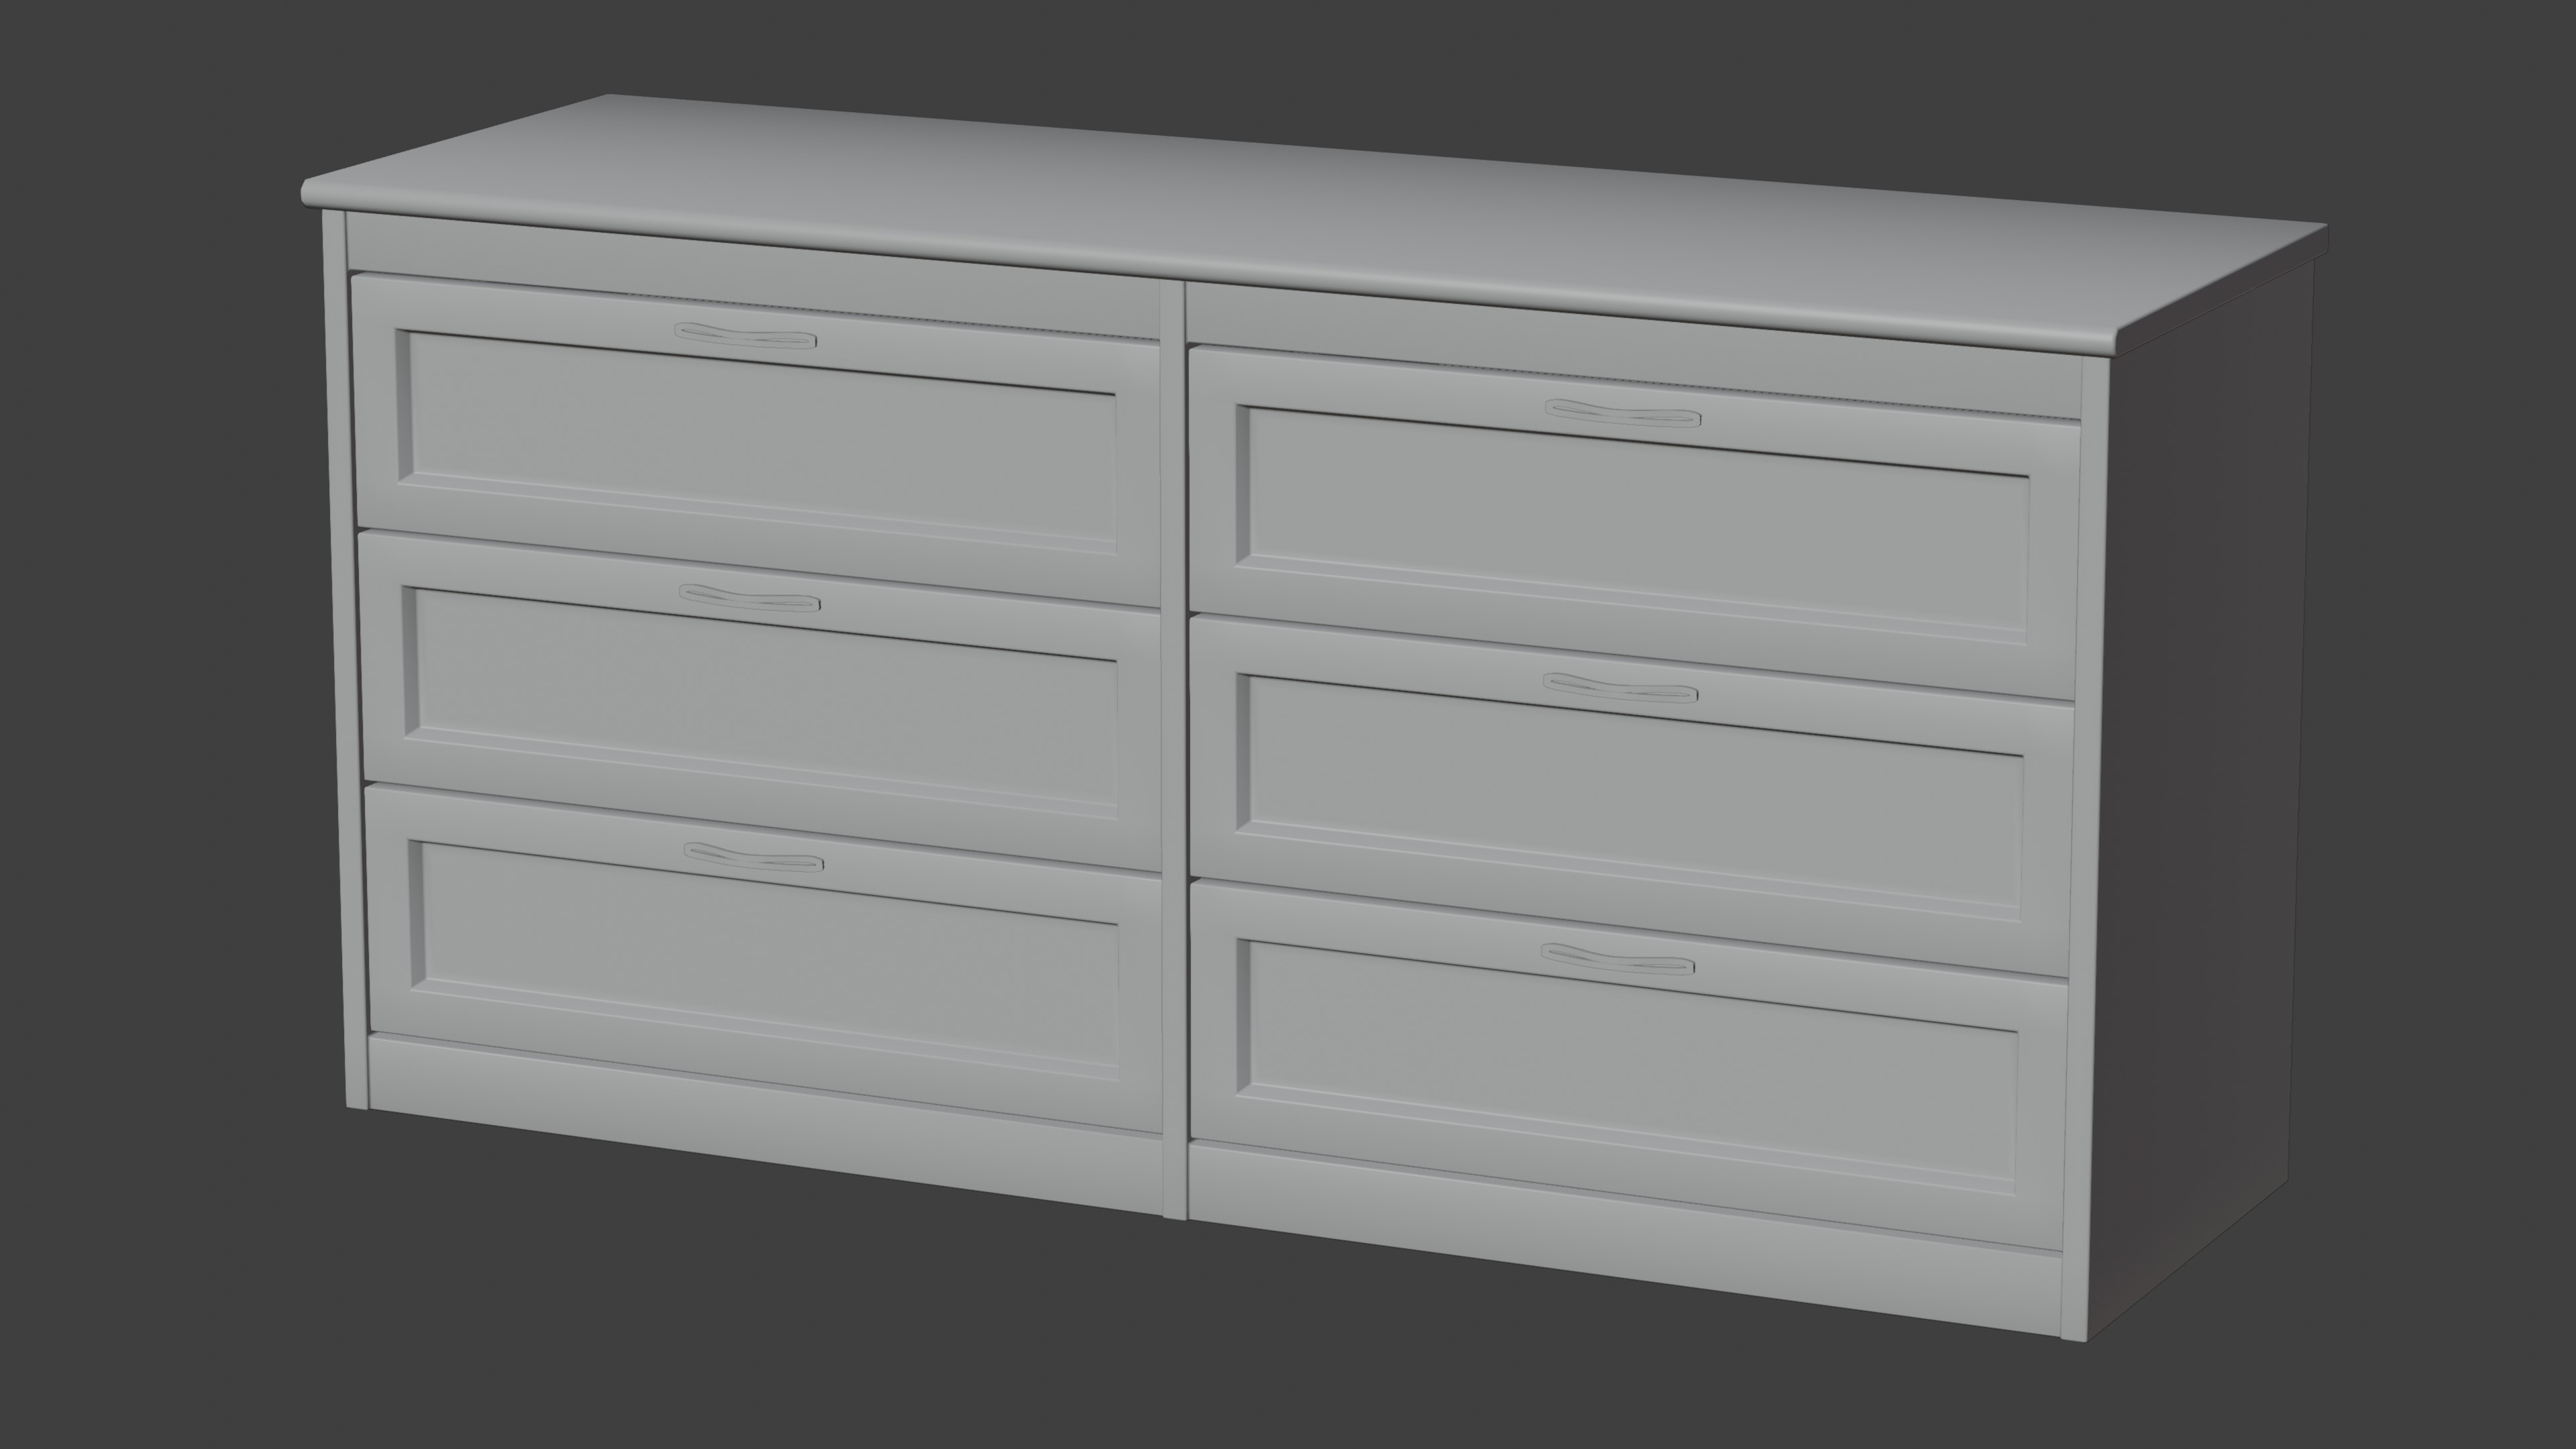 Dark Wood Dresser With Fully Modelled Drawers preview image 4